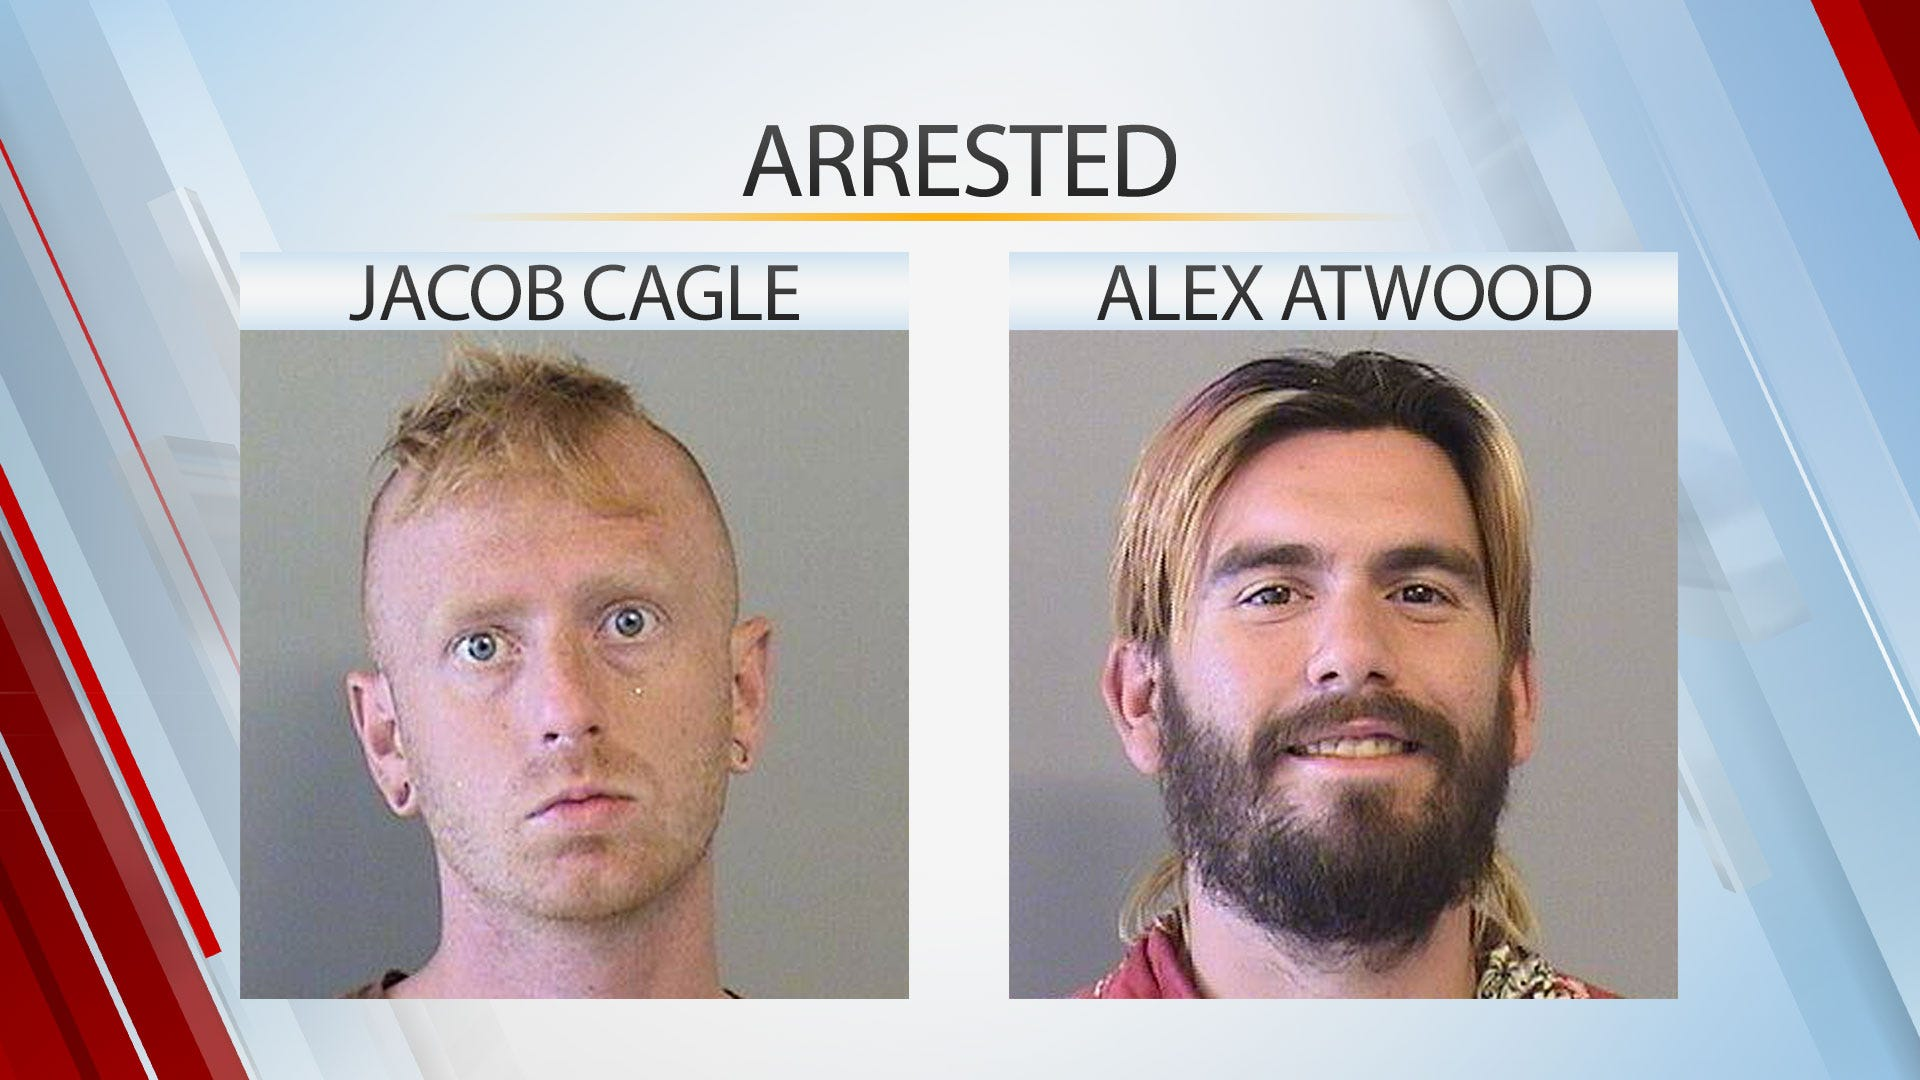 Two Arrested After Vandalizing Tulsa Houses, Businesses, Police Say